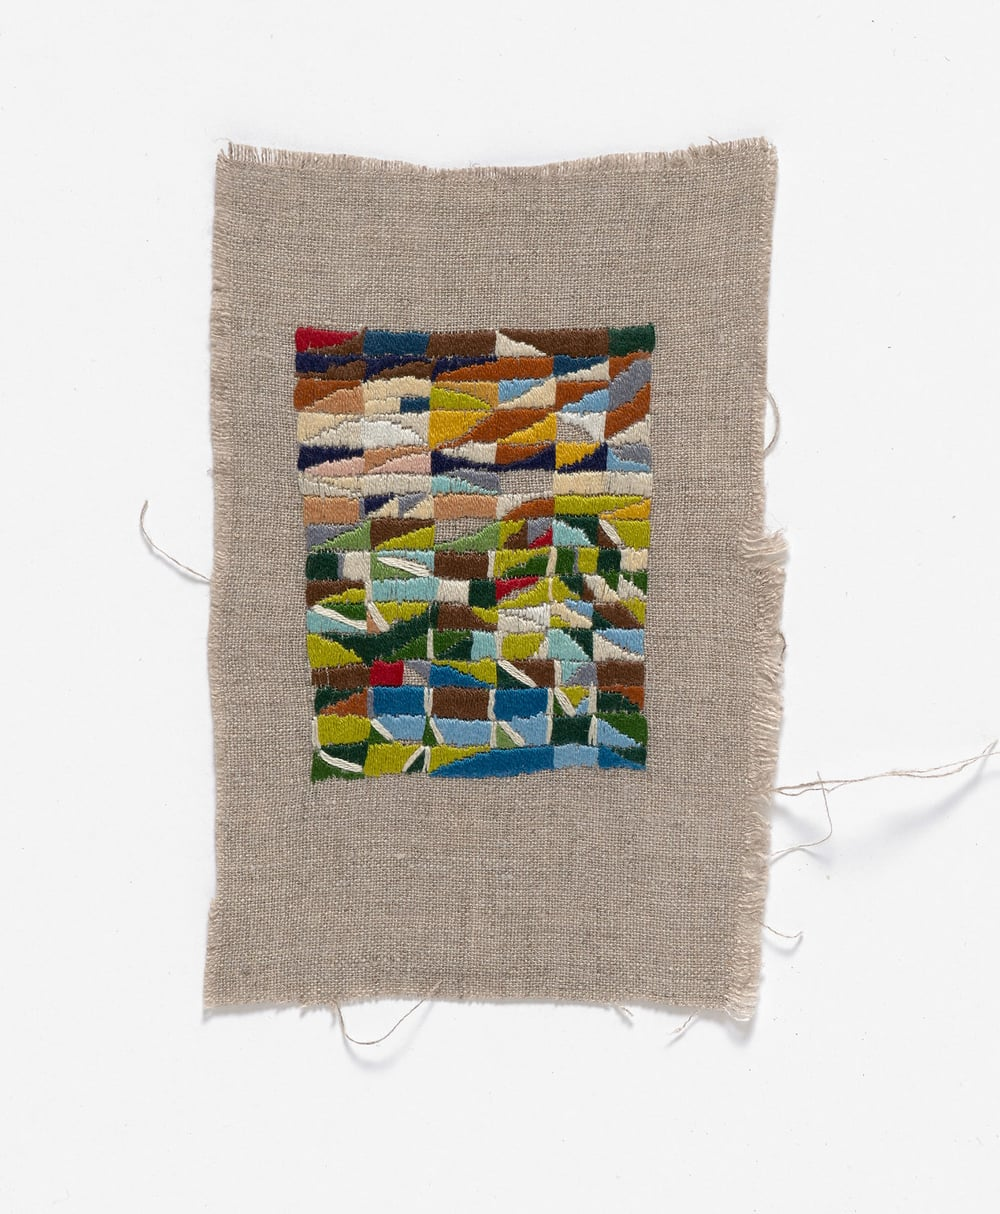 Longridge  2014 Cotton thread on linen 15 x 17cm